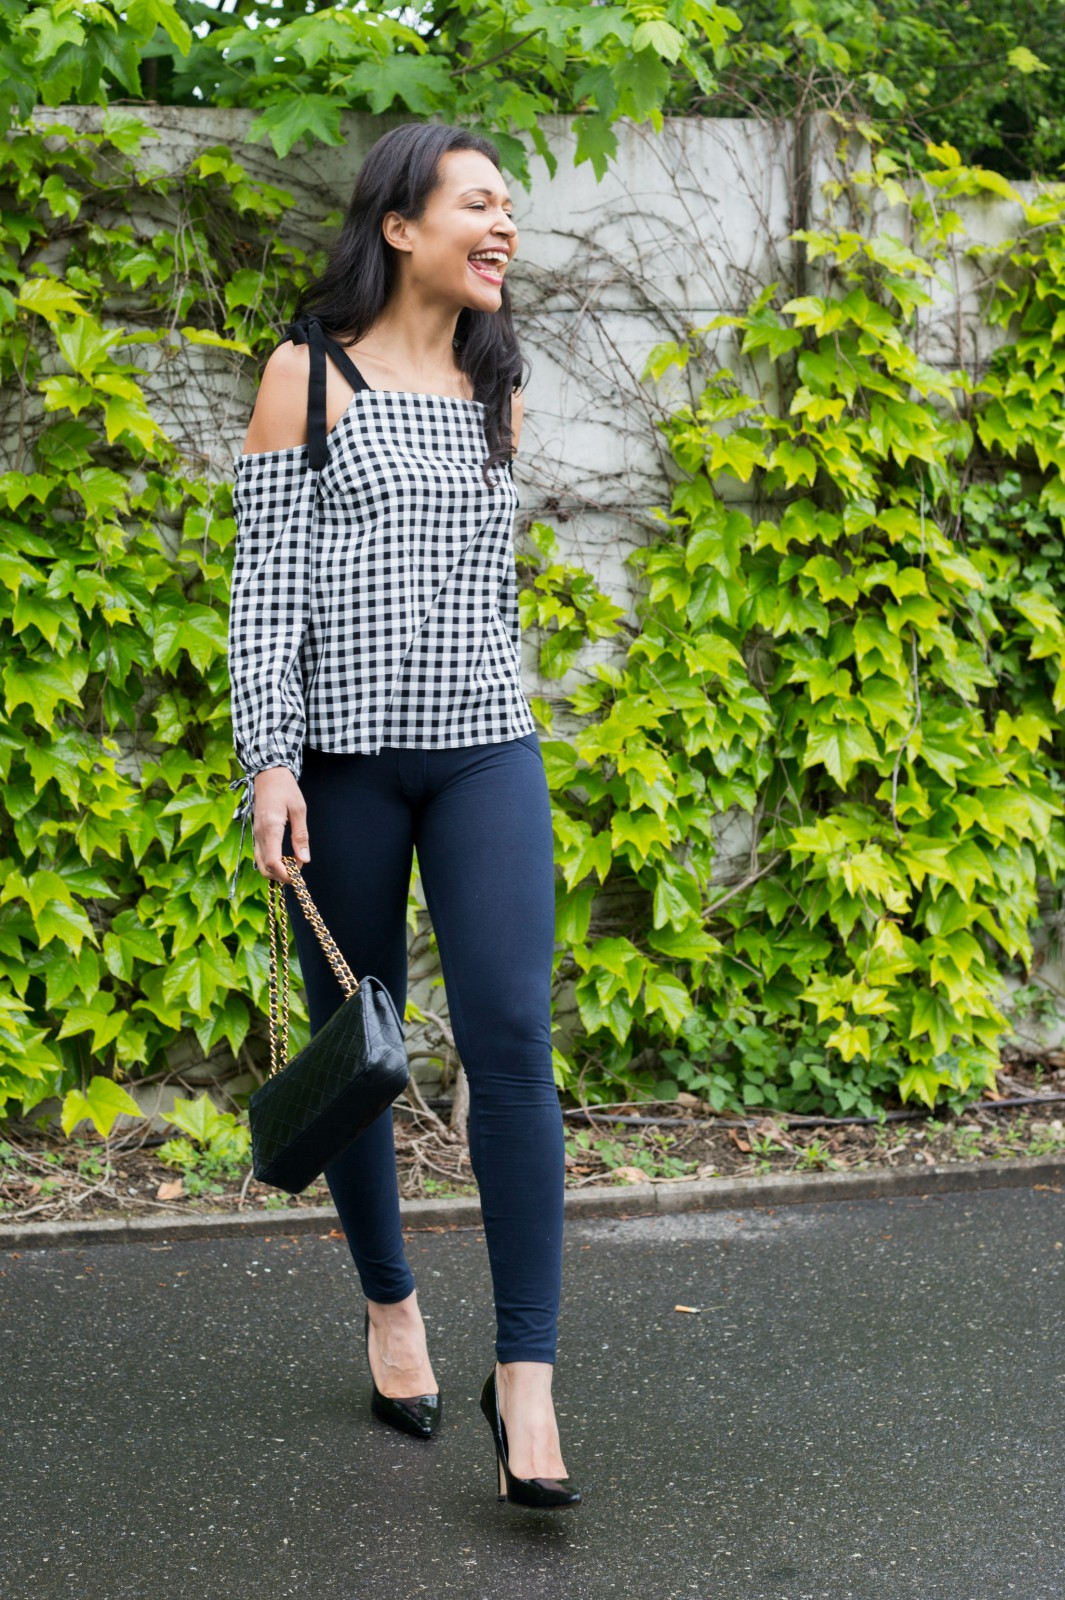 gingham/ skinny jeans/currently wearing